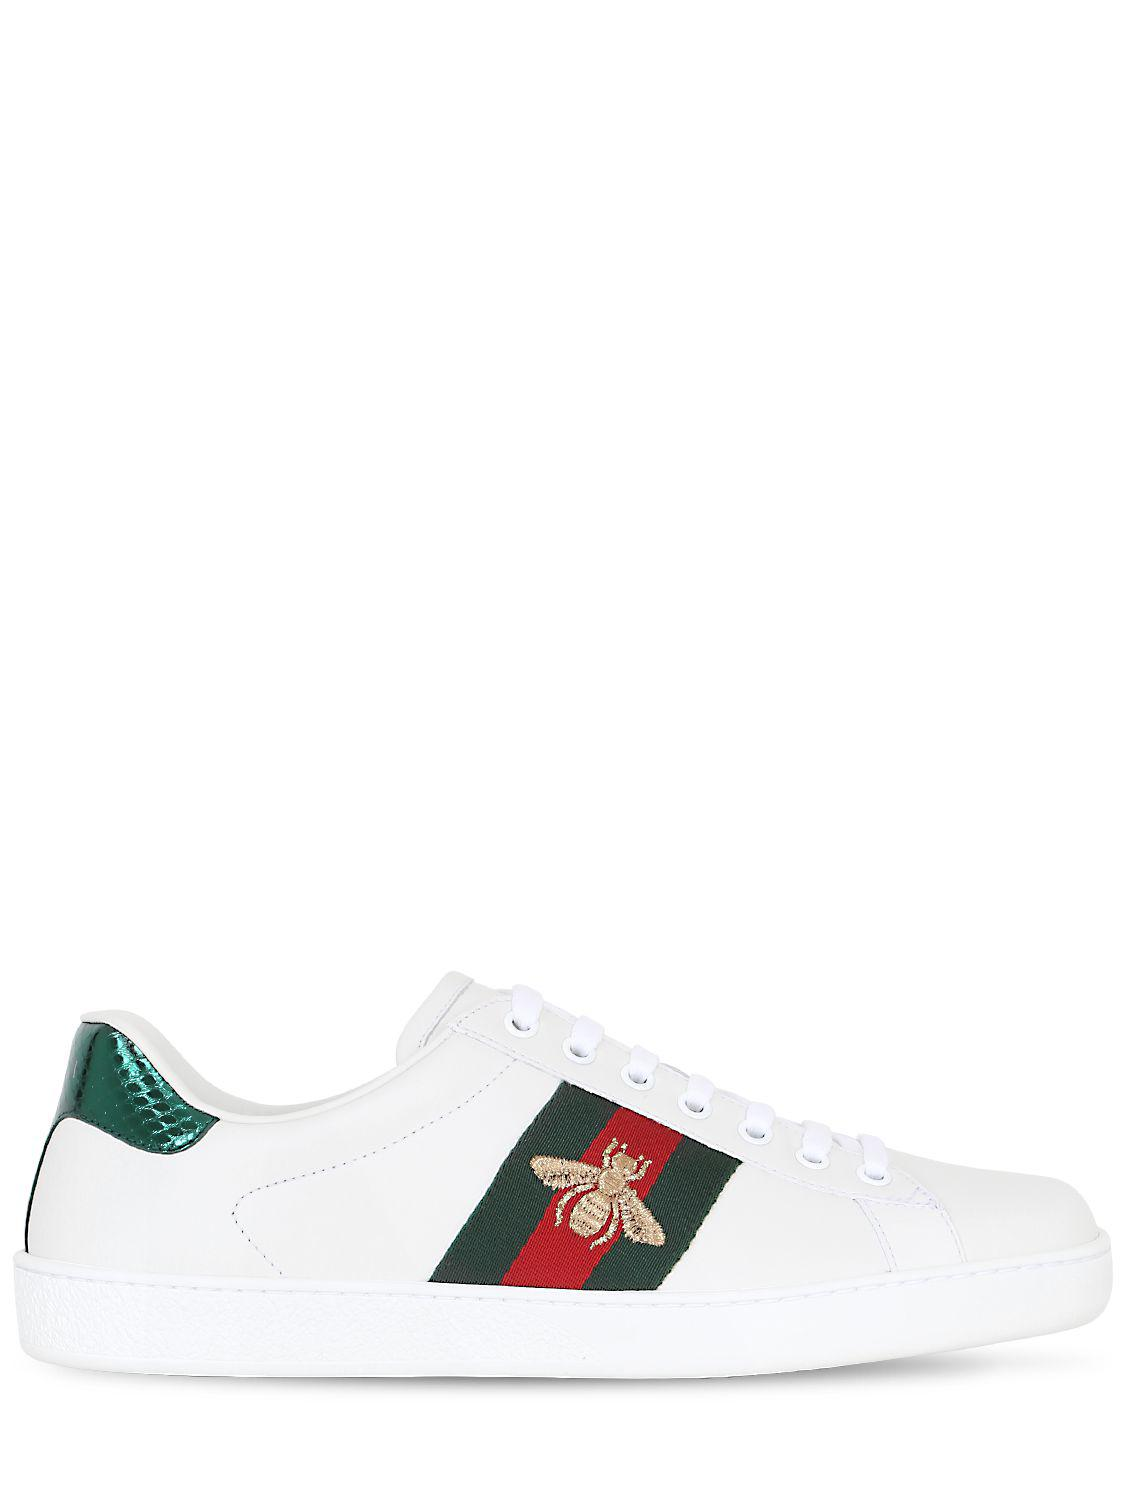 GucciNEW ACE BEE WEB LEATHER SNEAKERS W/ AYER EQyPvsQC